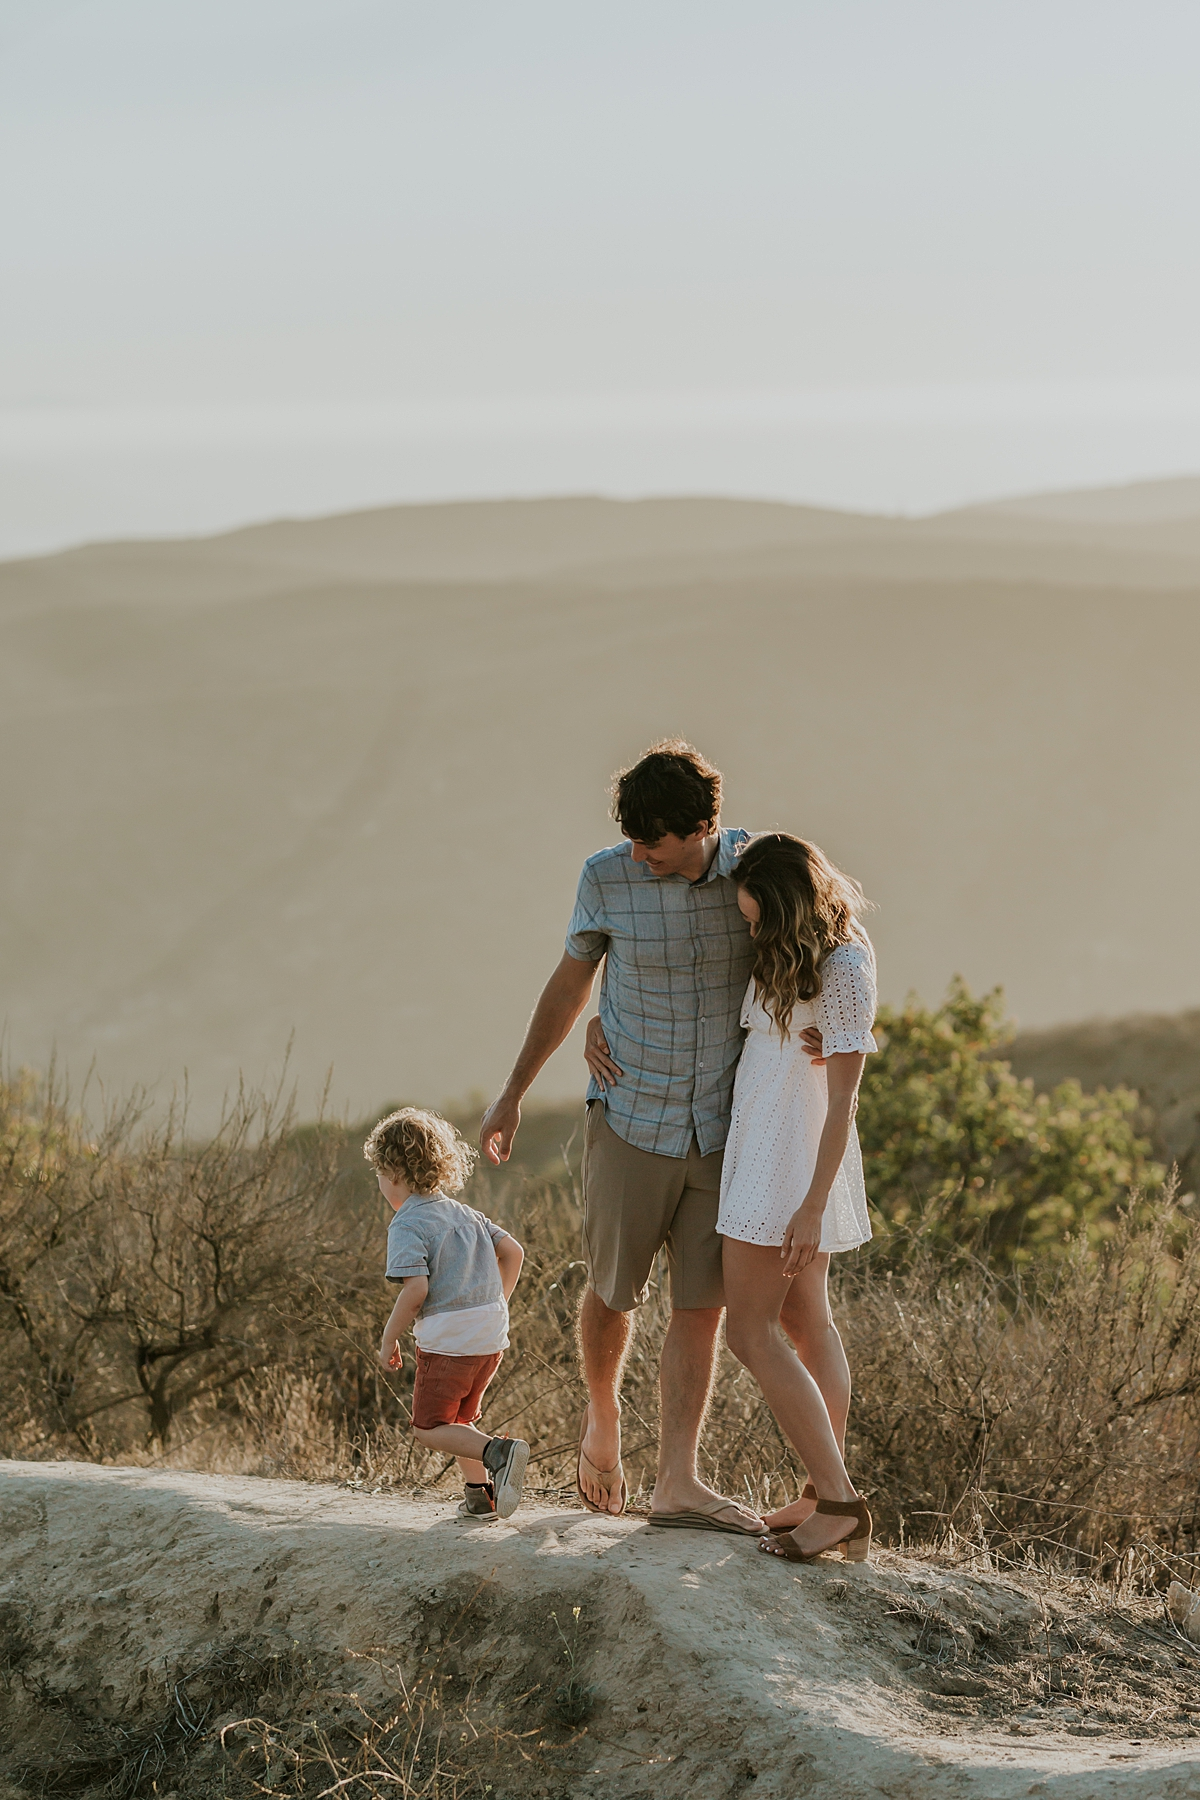 photo by Orange County family photographer Krystil McDowall Photography. Photo of mom and dad looking at their son as he runs around the hilltops wduring lifestyle family photo session at Top of the World Laguna Beach California